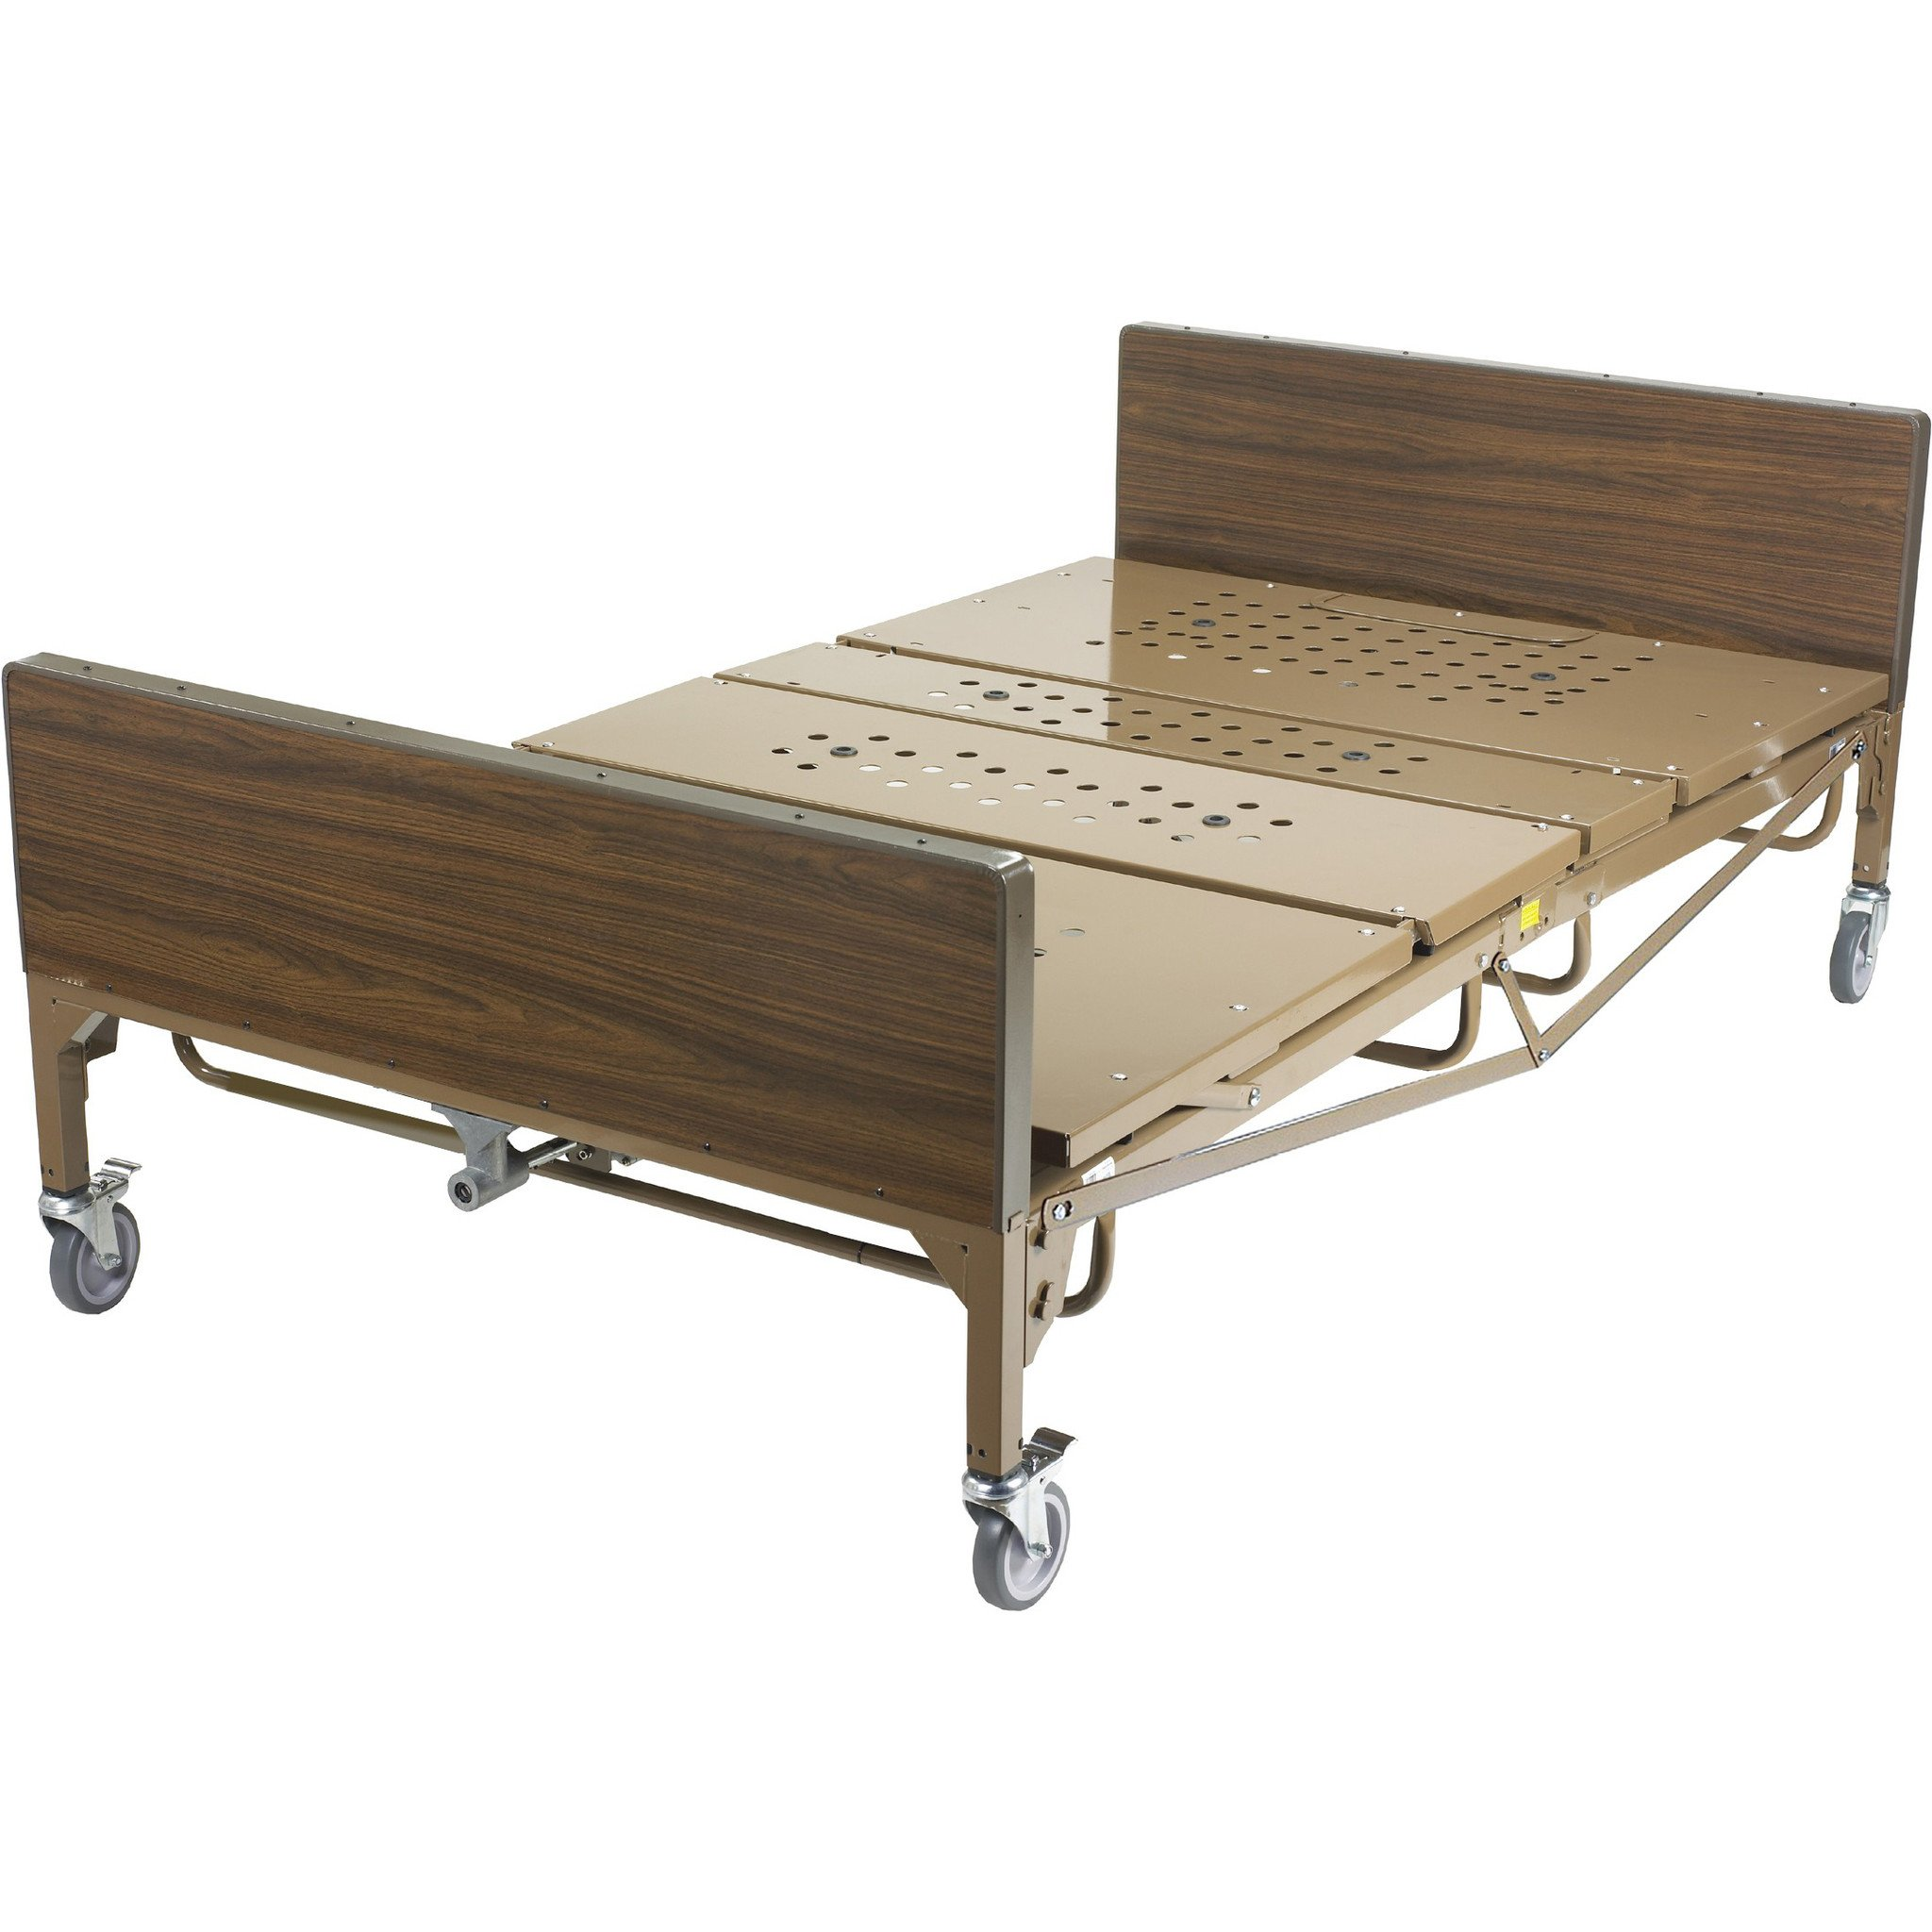 Full-Electric Bariatric Bed Package – DOC Development, Inc.